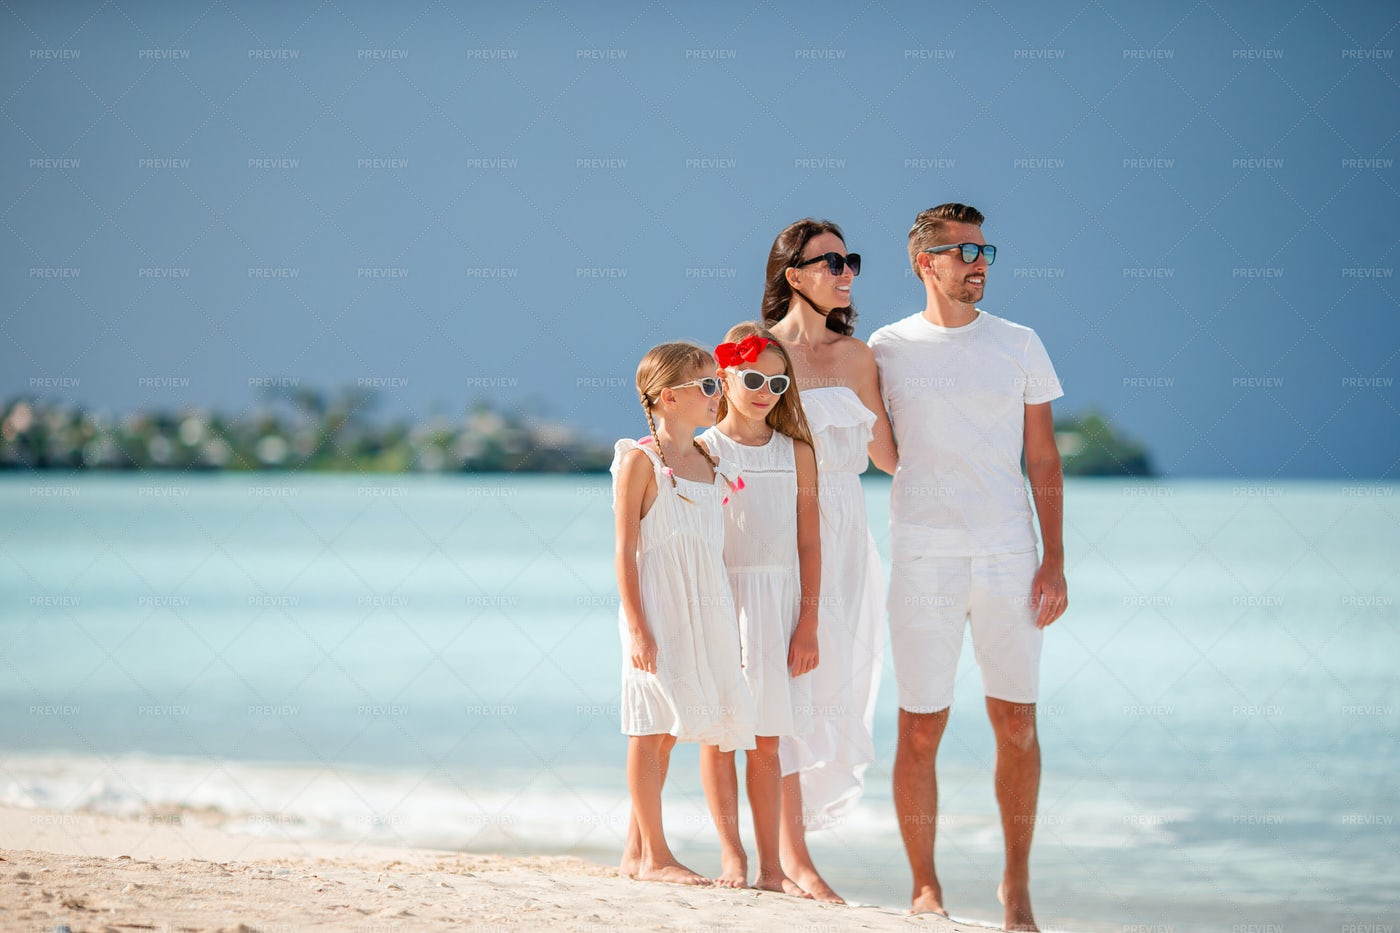 Vacationing Family In White: Stock Photos